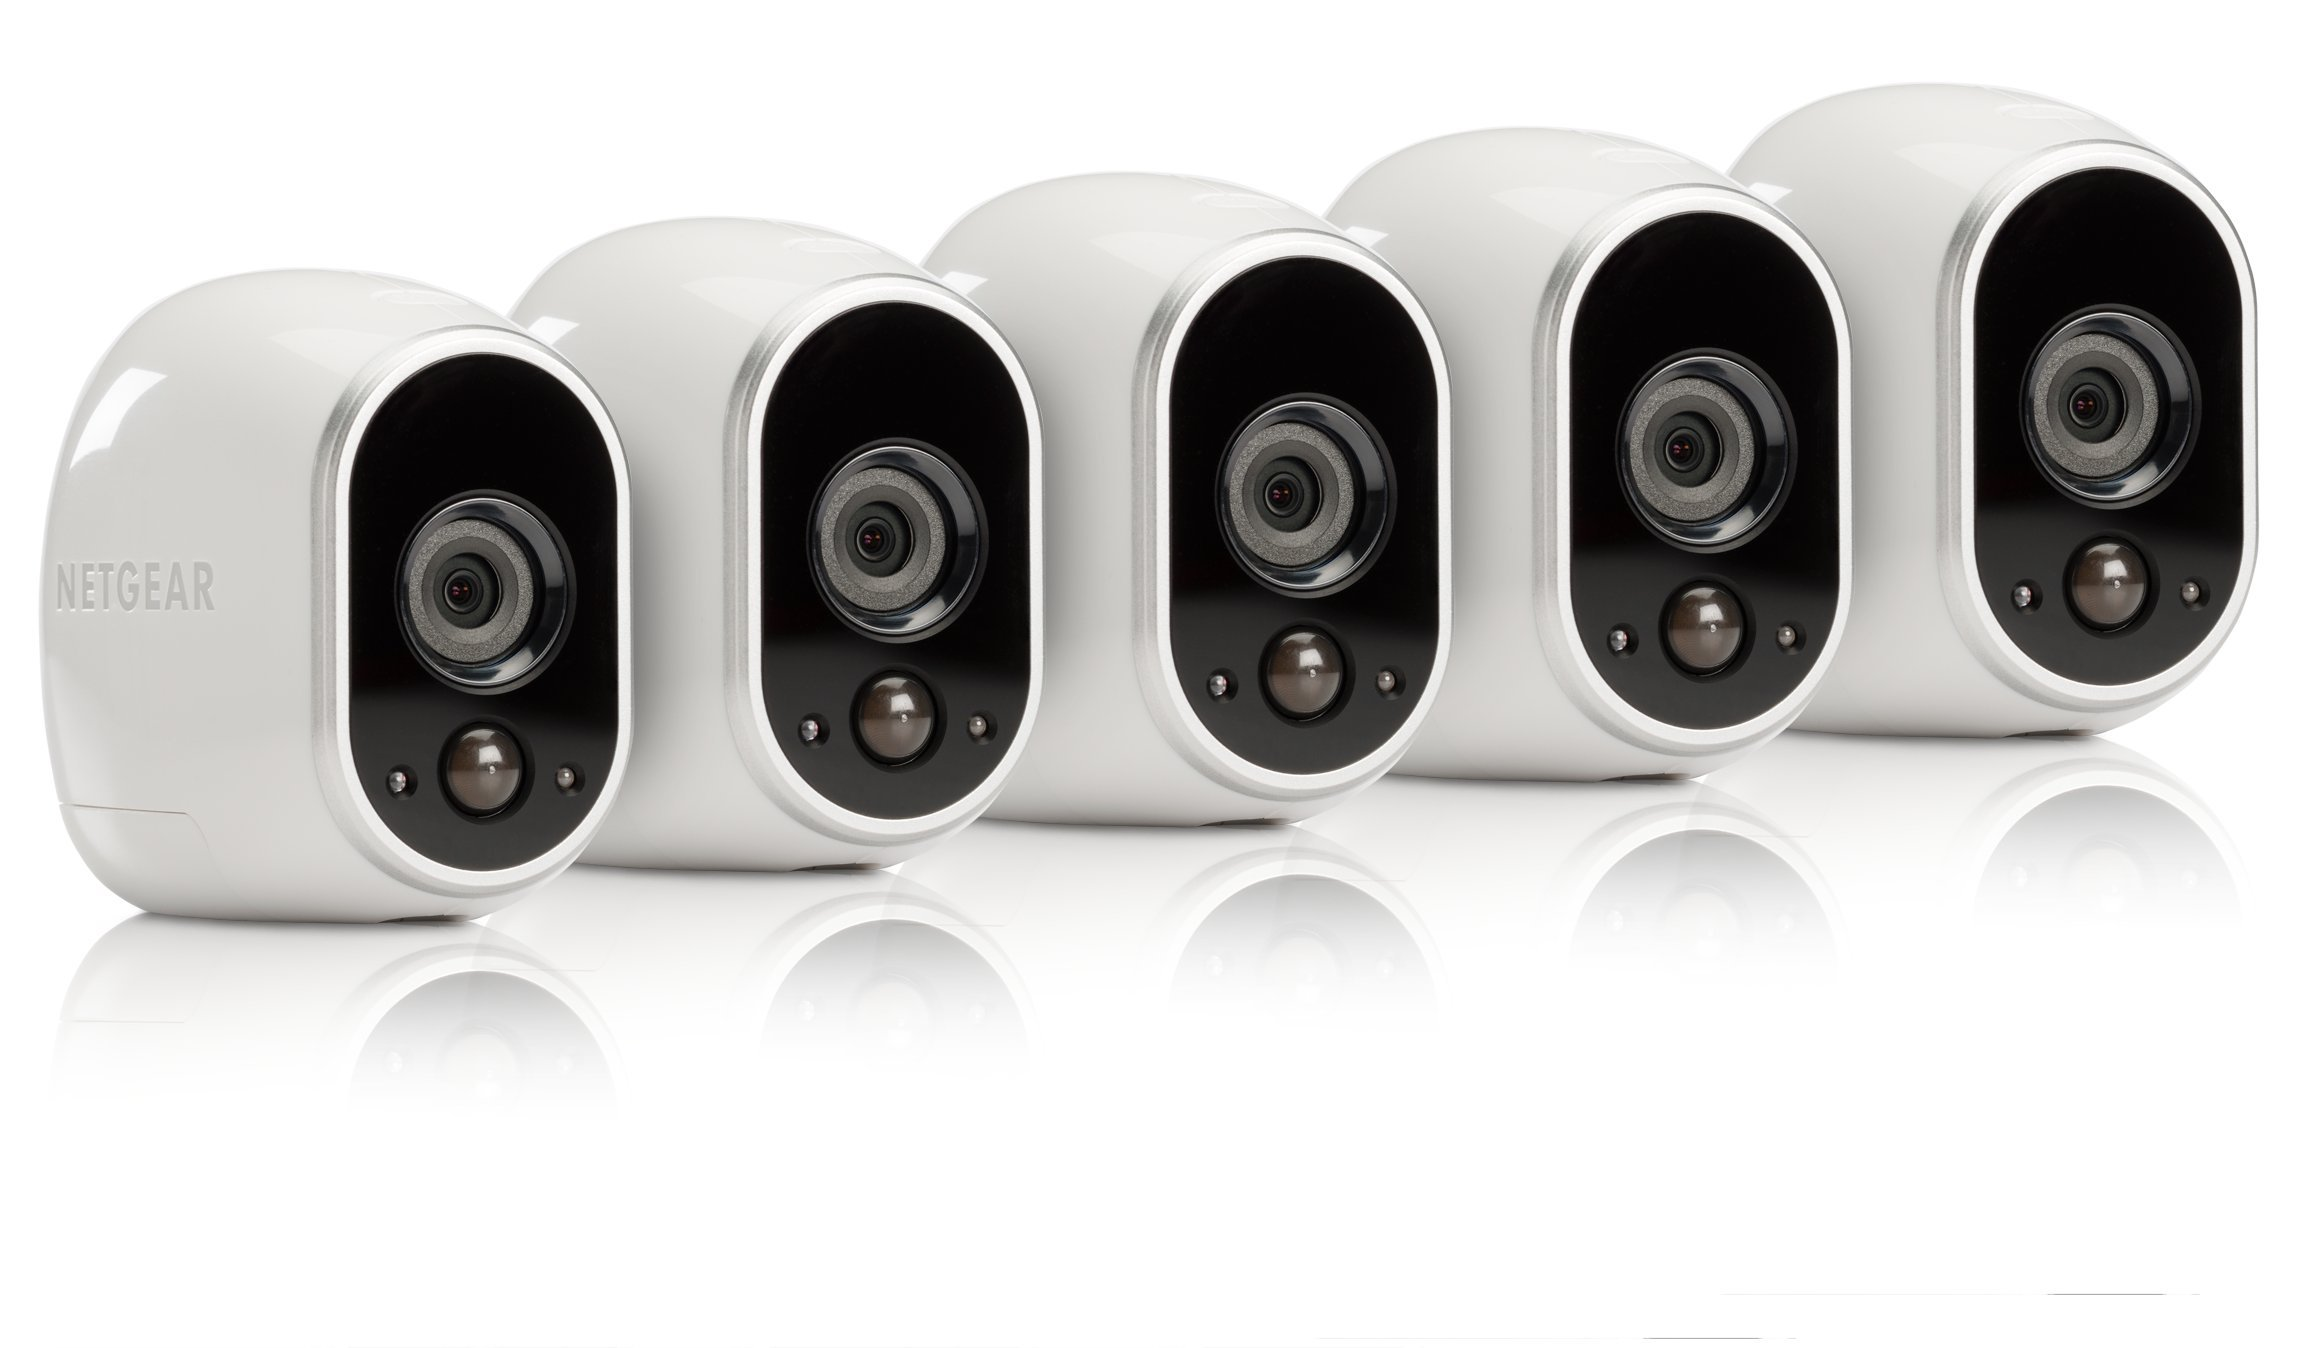 Arlo - Wireless Home Security Camera System | Night vision, Indoor/Outdoor, HD Video, Wall Mount | Cloud Storage Included | 5 camera kit (VMS3530-100NAR) - (Renewed)